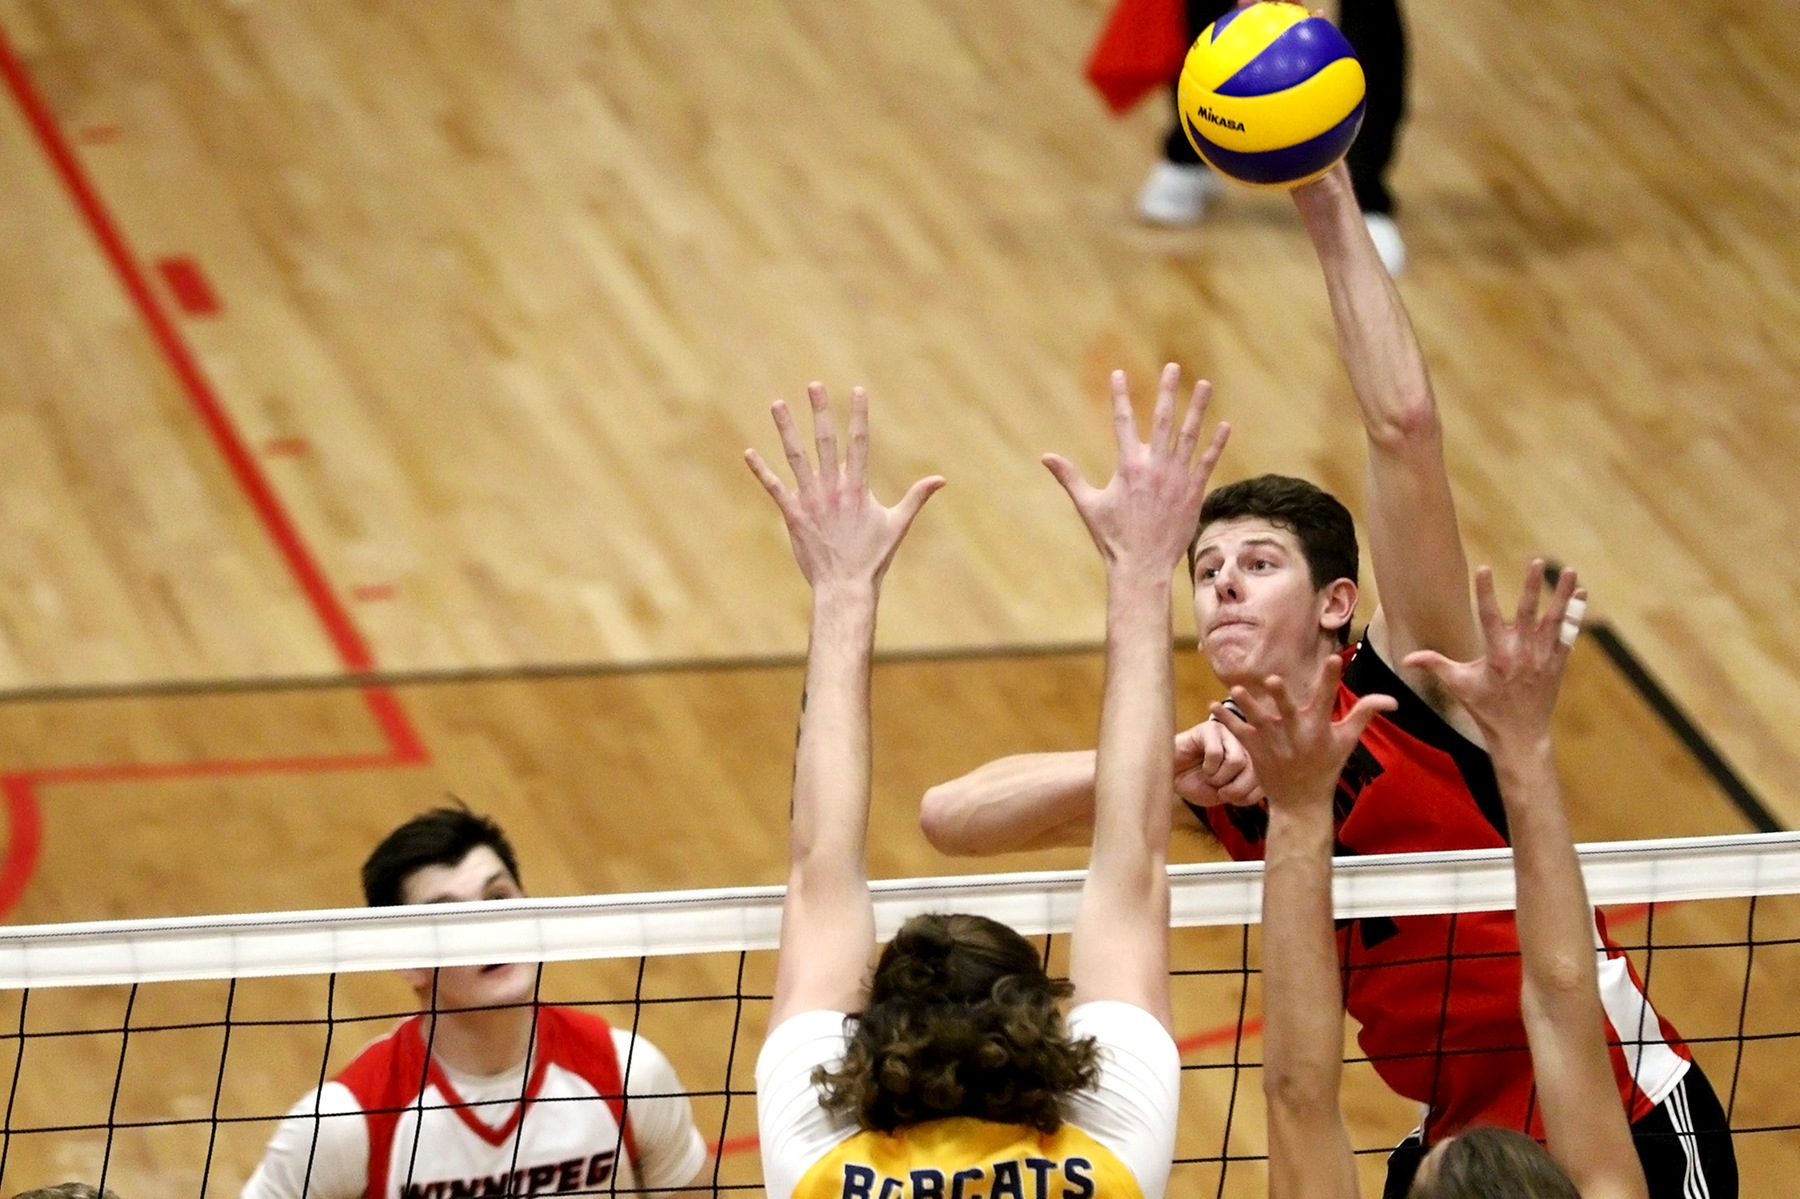 Daniel Thiessen had six kills to lead the Wesmen in a straight-sets loss to the Trinity Western Spartans, Oct. 25, 2019. (David Larkins/Wesmen Athletics file)